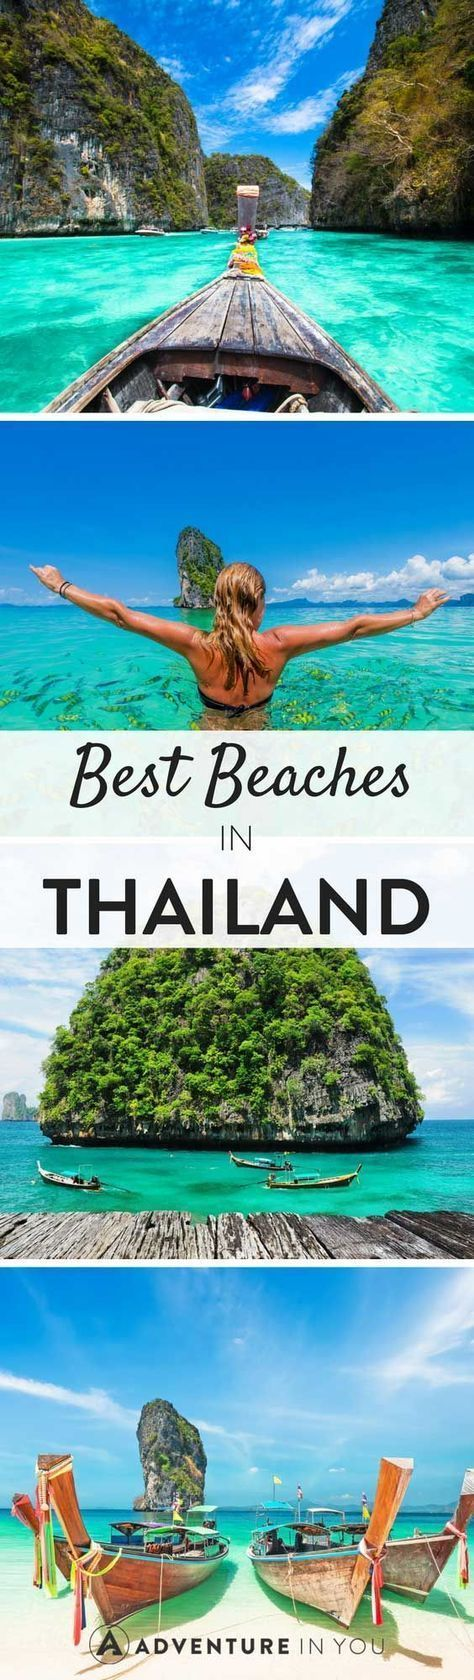 Thailand Beaches | Looking for the best beaches in Thailand? Here are a few travel tips for visiting some of the best beaches in Thailand.